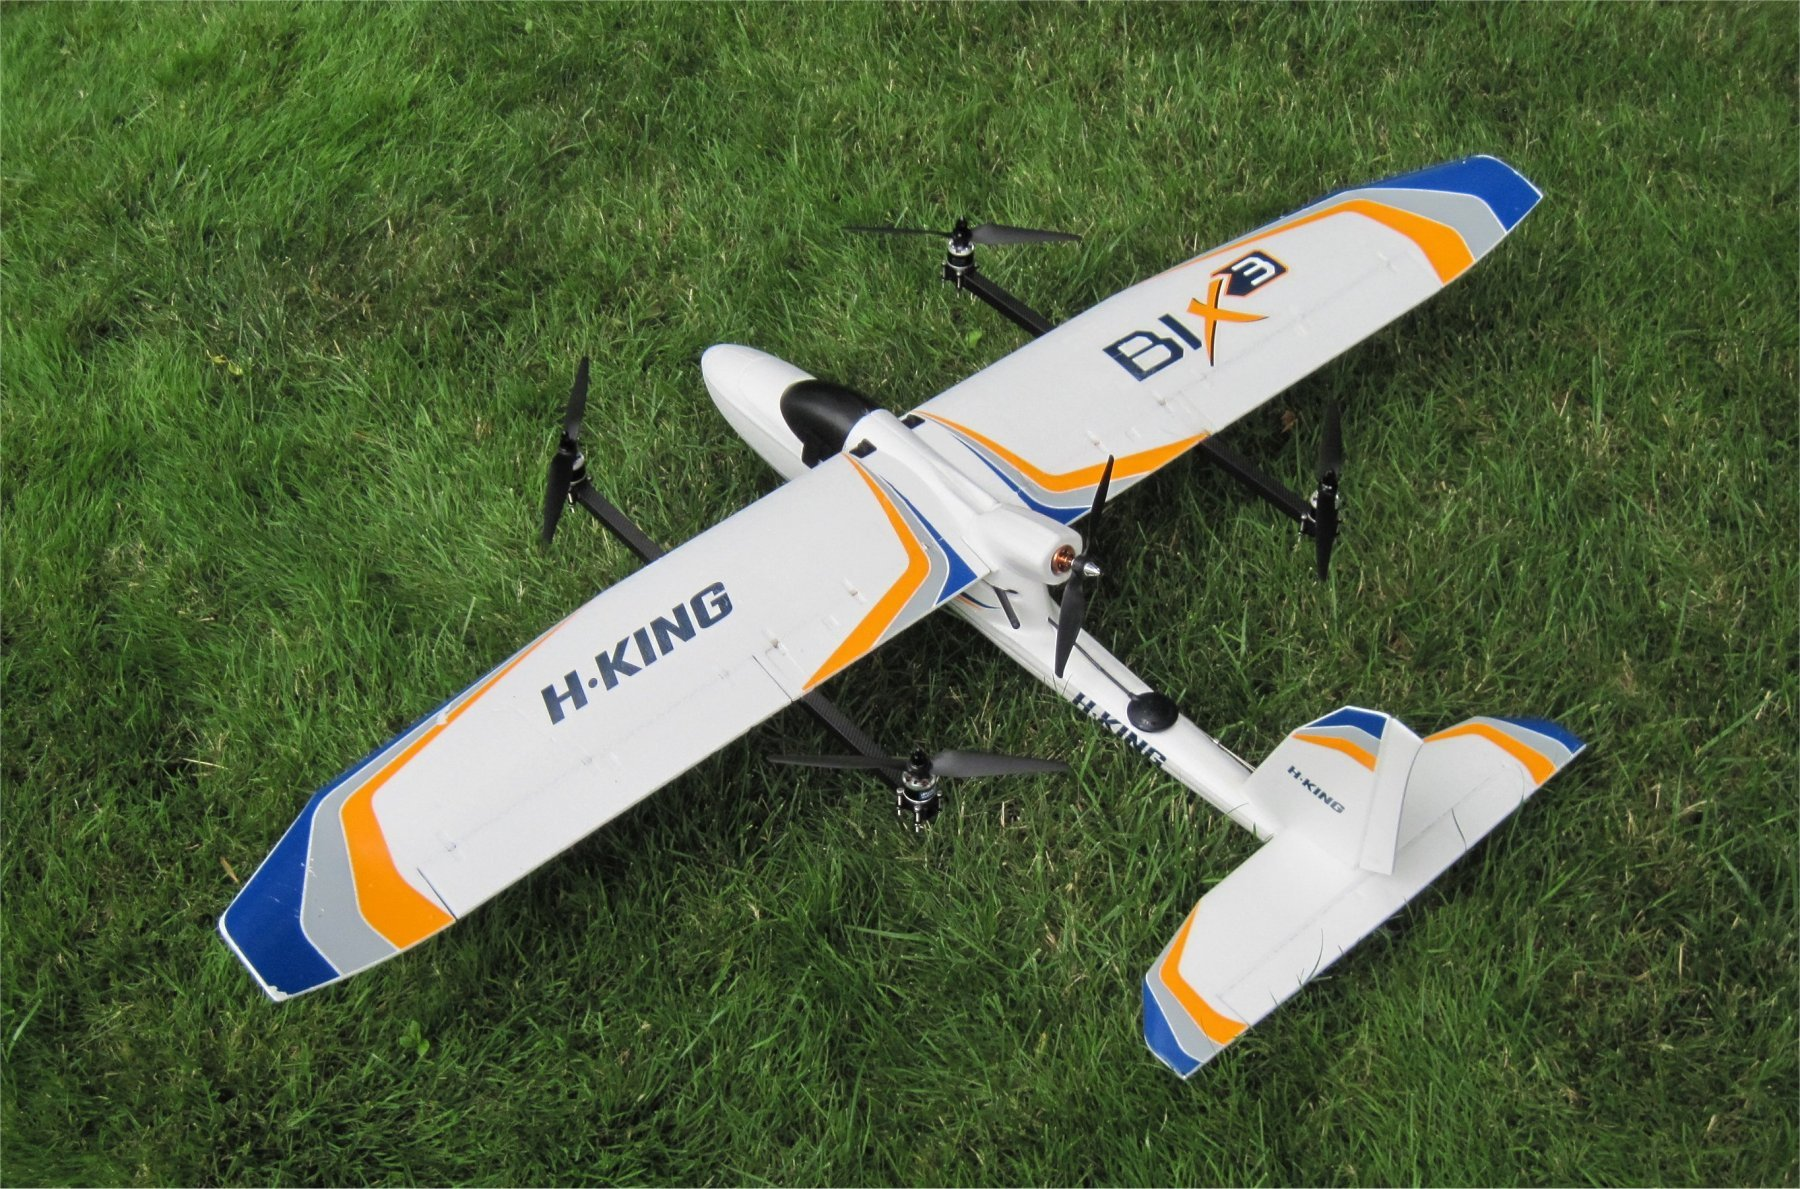 autopilot drone with 636995 on 1357 further Manned Aerial Drone additionally 1033029 avus Performance Rs6 Pushes Output To 700hp Stirs Up Racial Tension also 1061699 marilyn Monroe Car Goes For 210000 At Auction Updated as well Diydrones.